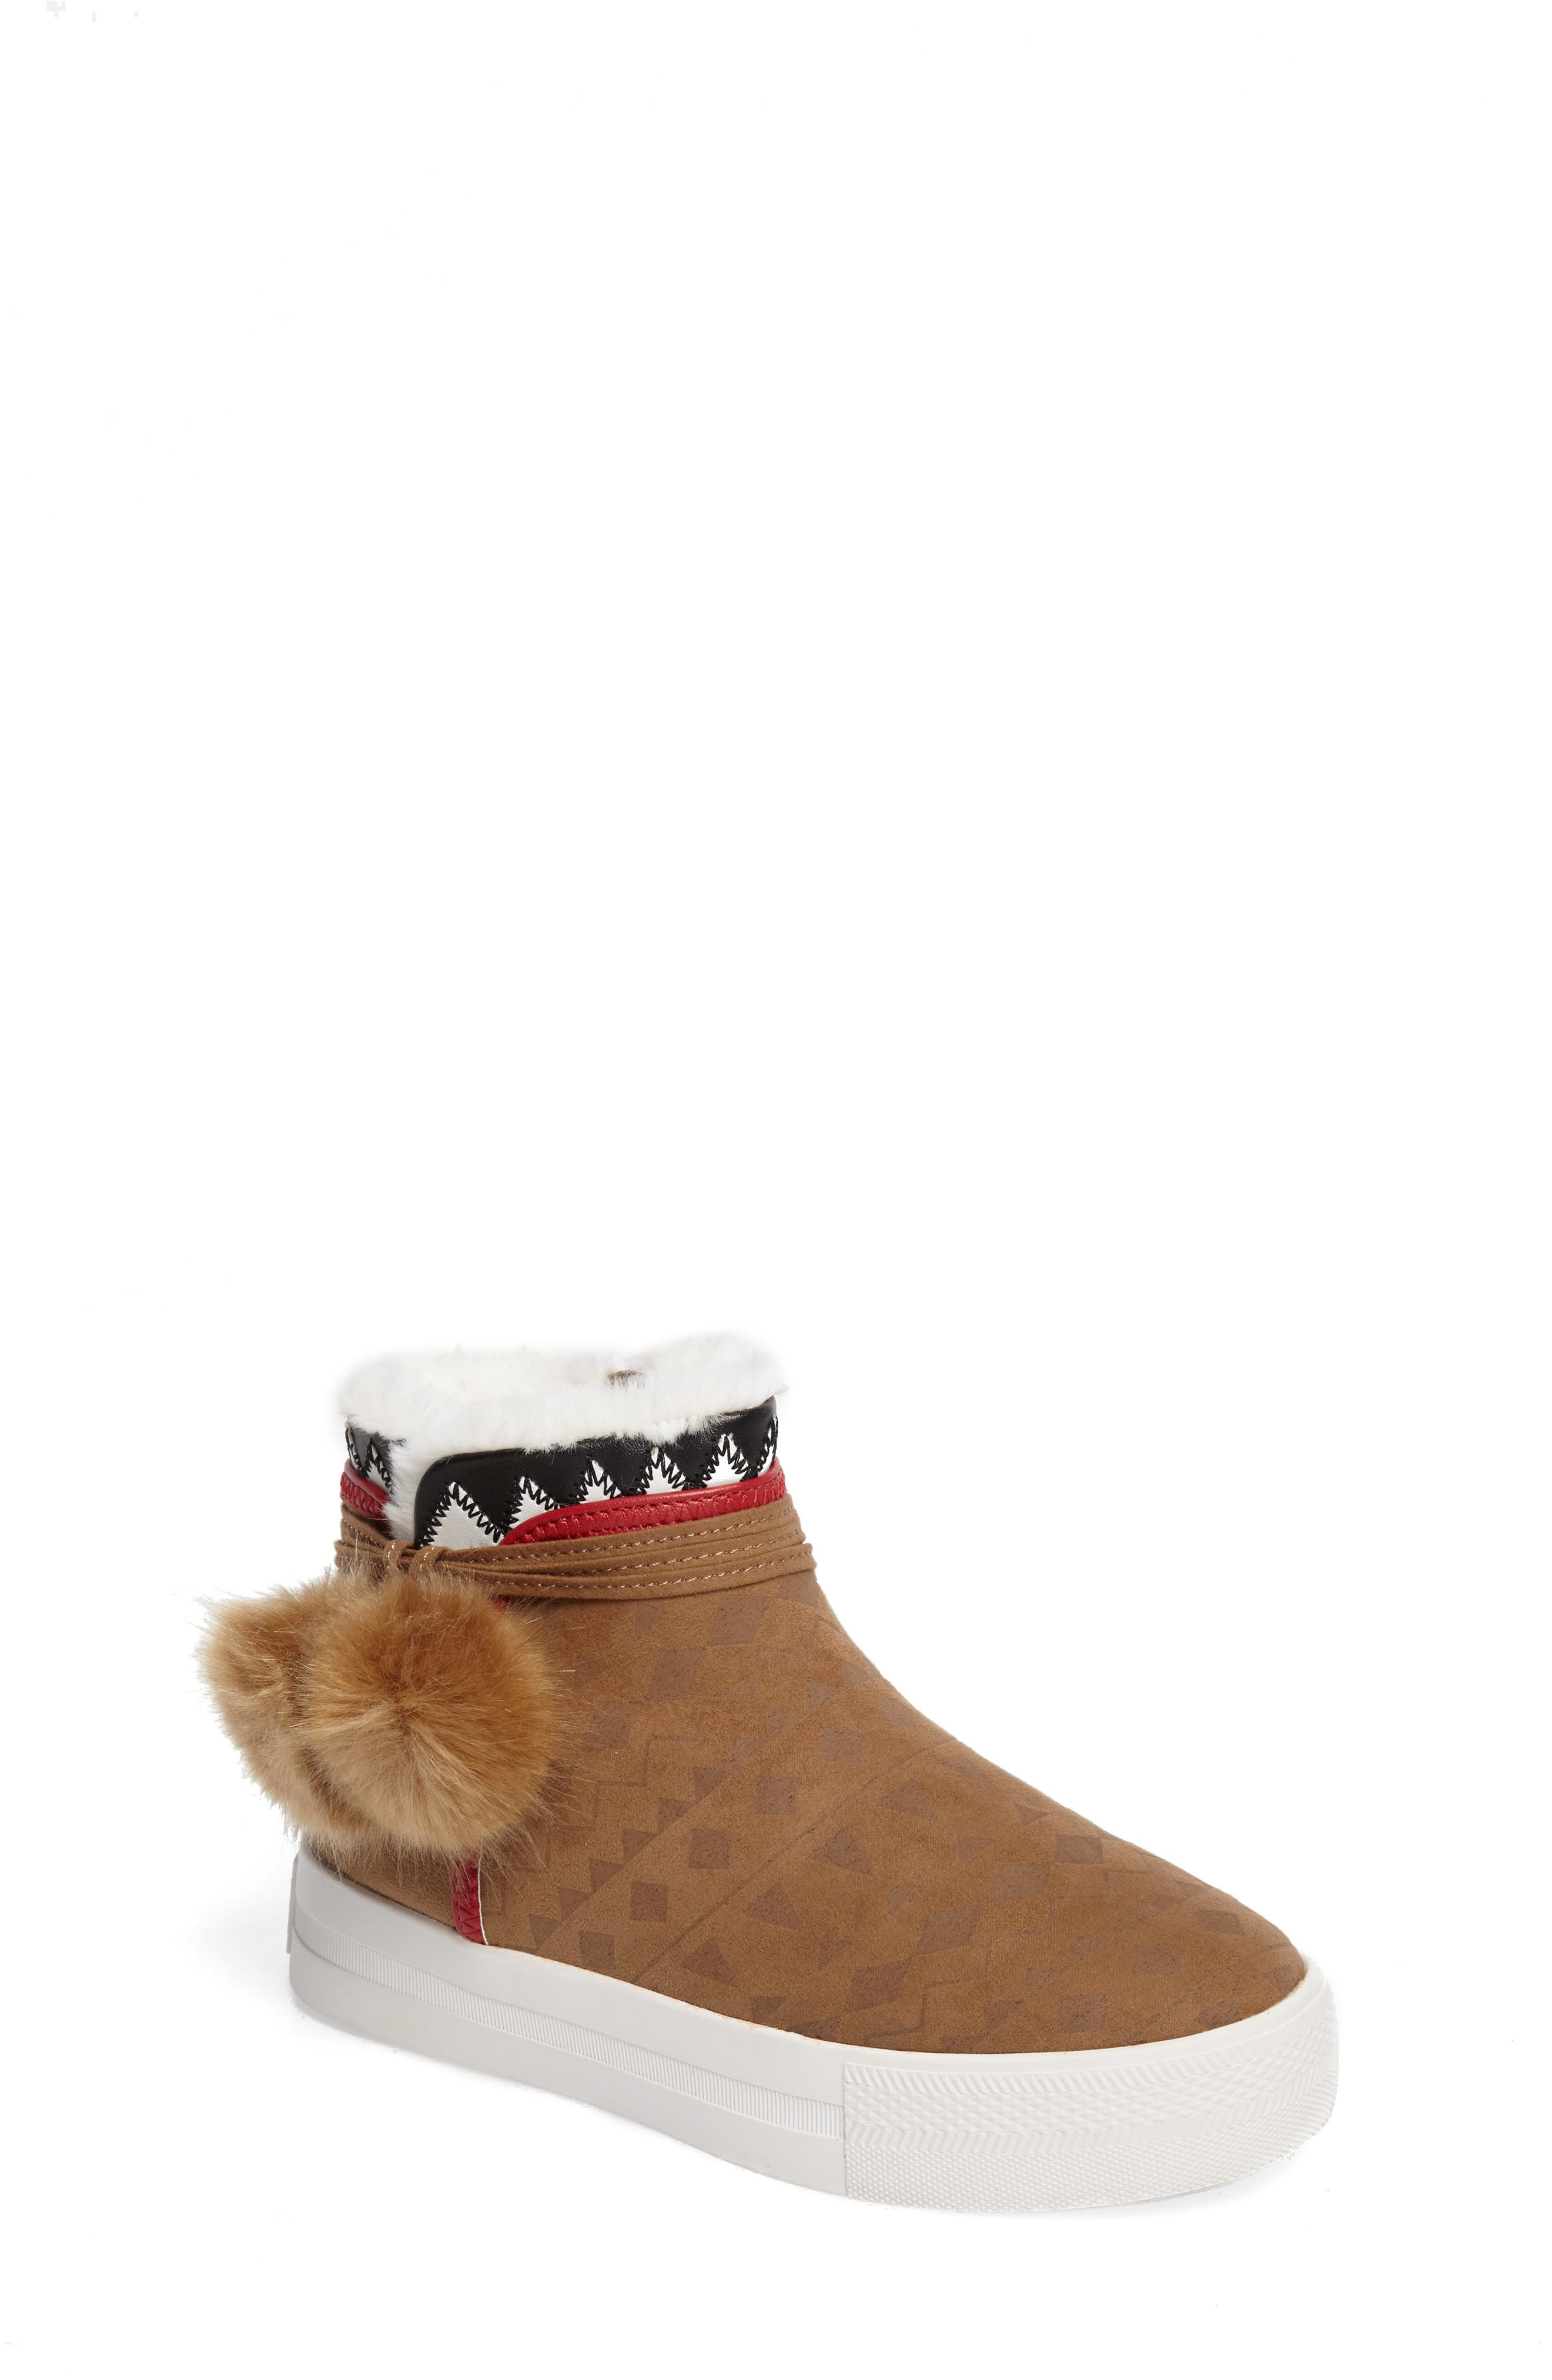 Alternate Image 1 Selected - Ash Lynn Faux Fur Pom Sneaker Boot (Toddler, Little Kid & Big Kid)